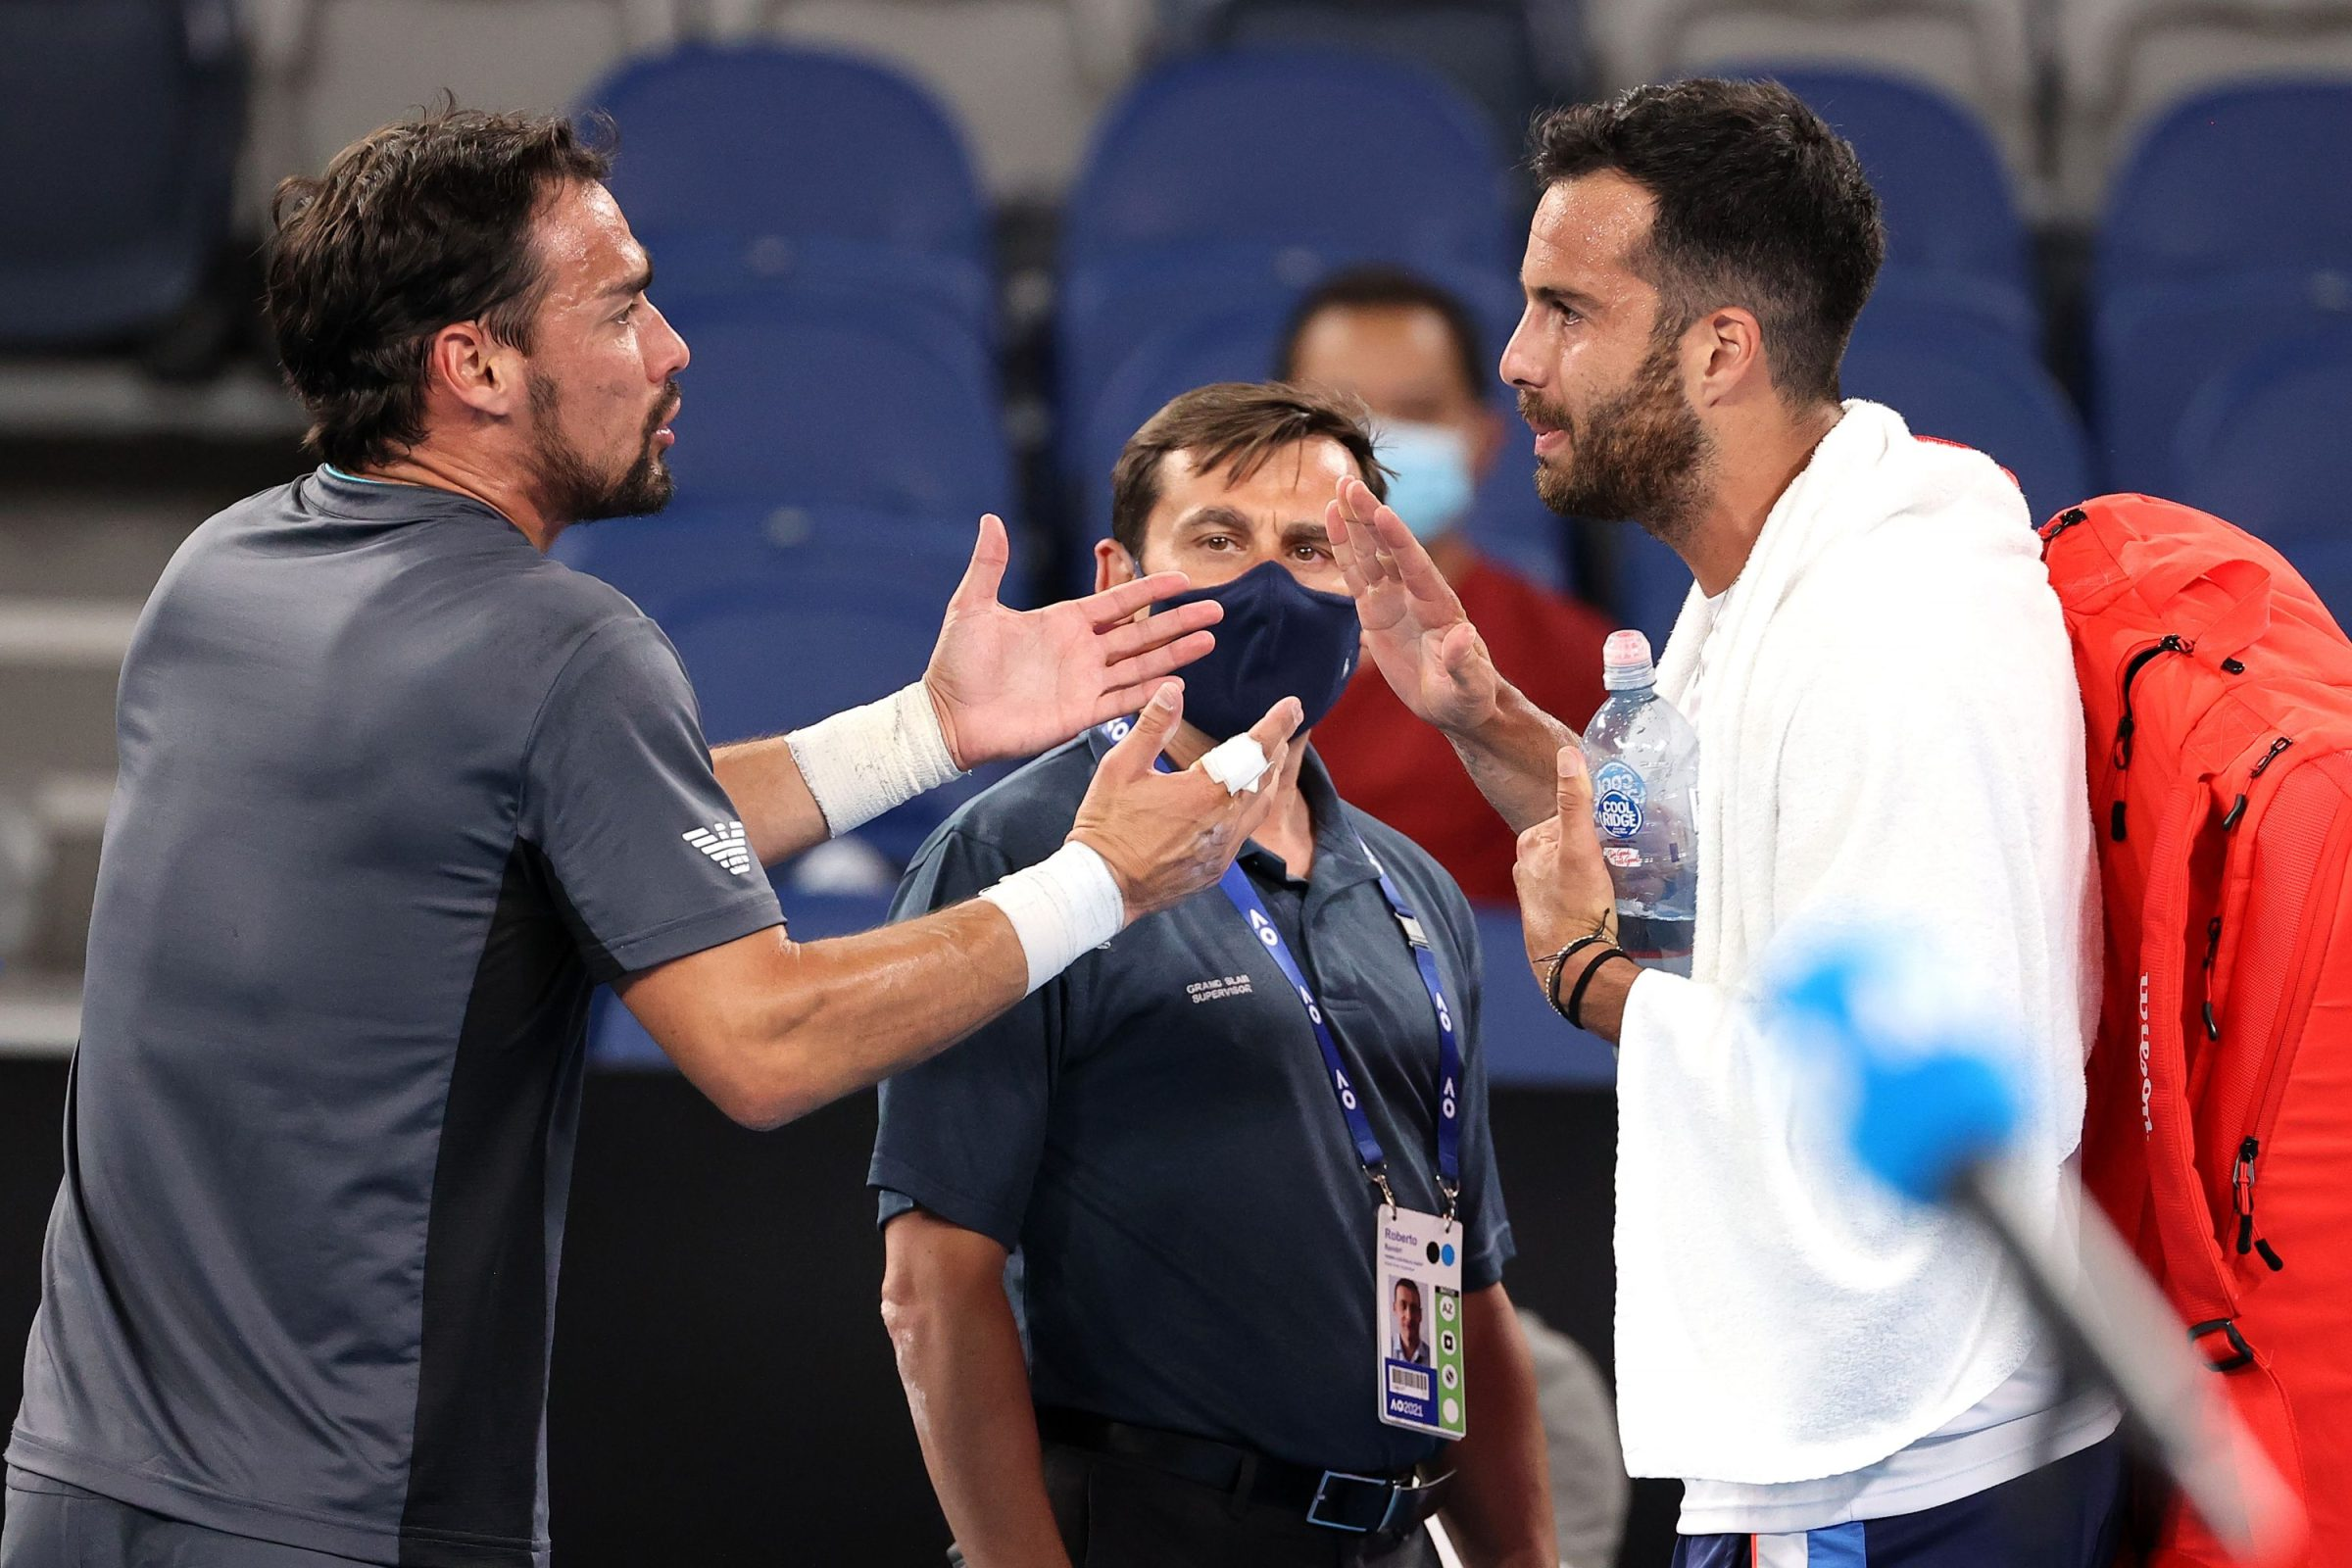 Fabio Fognini and Salvatore Caruso argue after their Australian Open match.